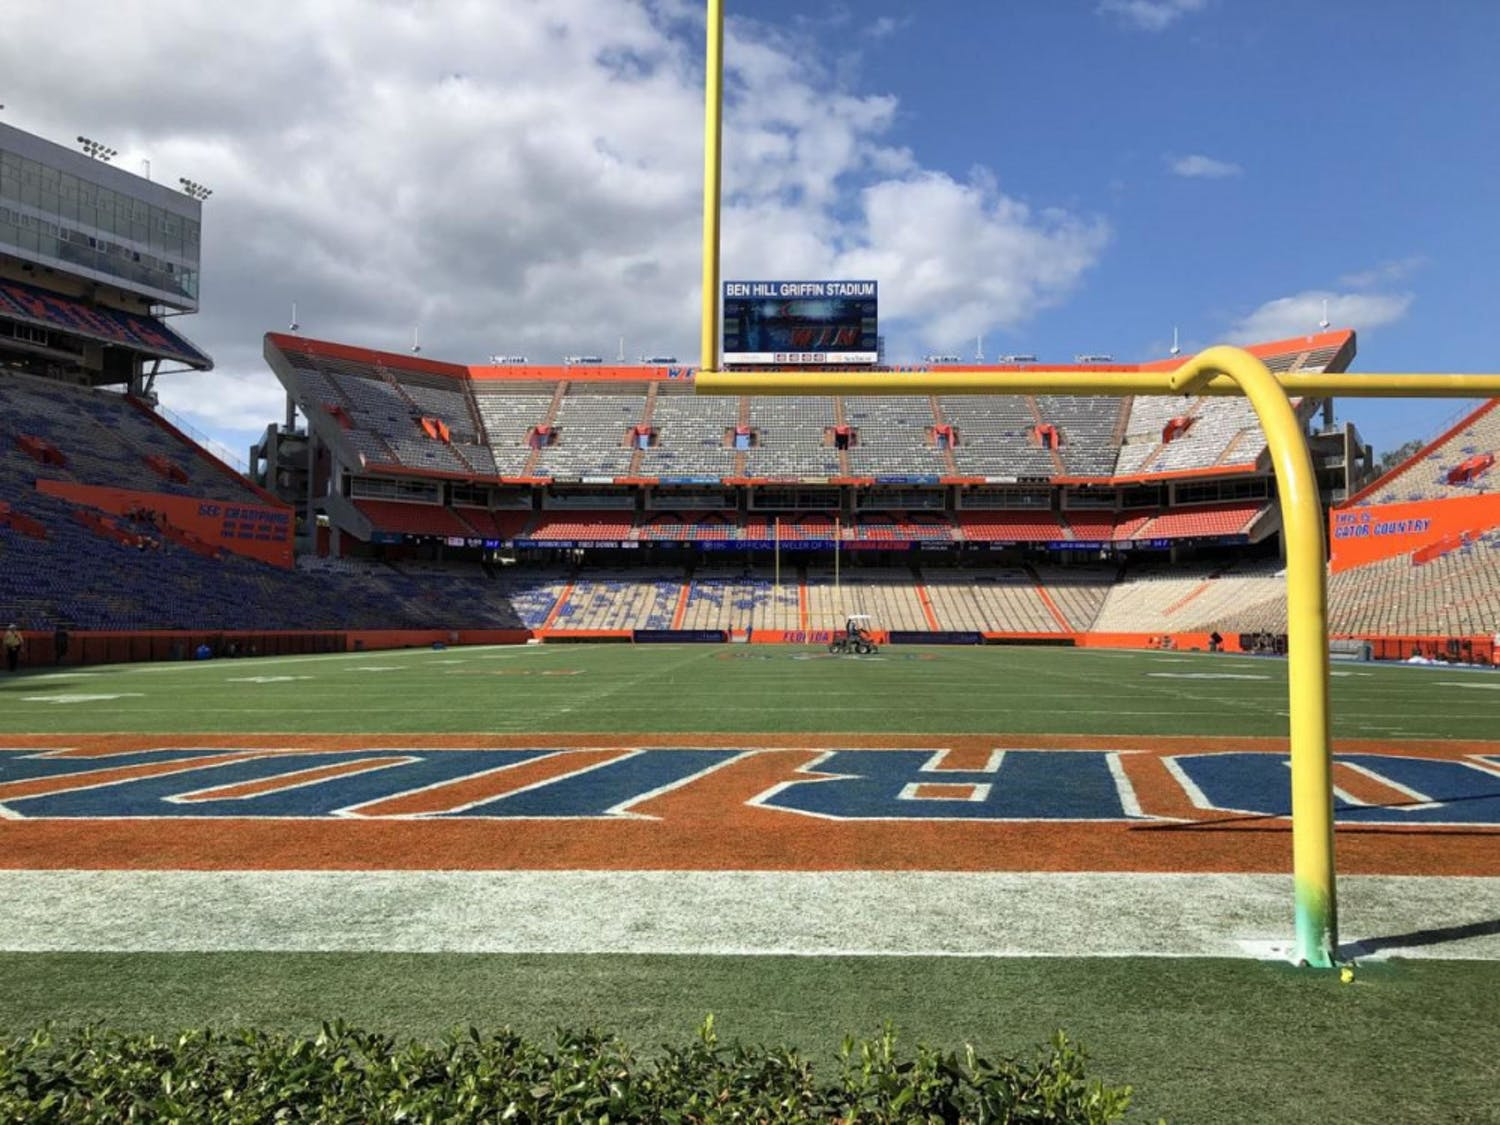 Stadiums across teh country have been left empty with sporting events canceled due to the COVID-19 pandemic.